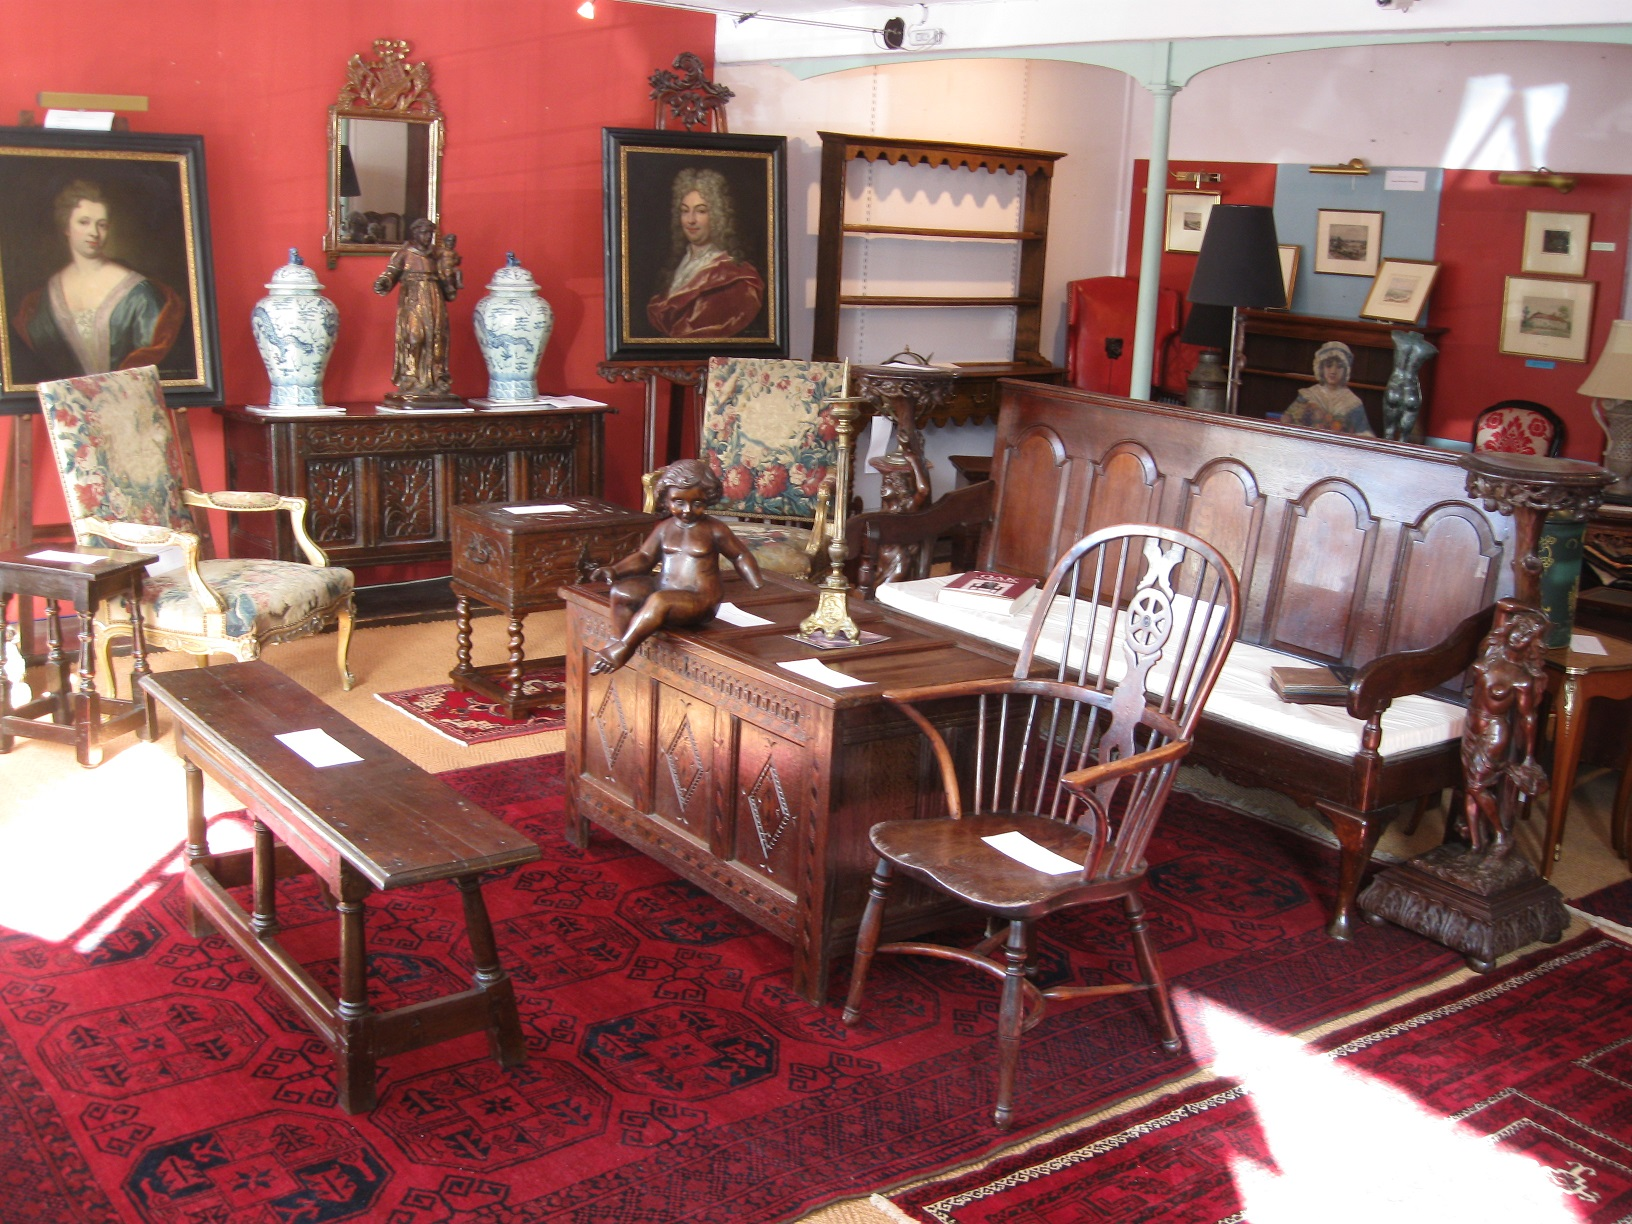 Exhibits are starting to arrive for the Early Furniture and Rug Selling Exhibition – Sat. 16th March